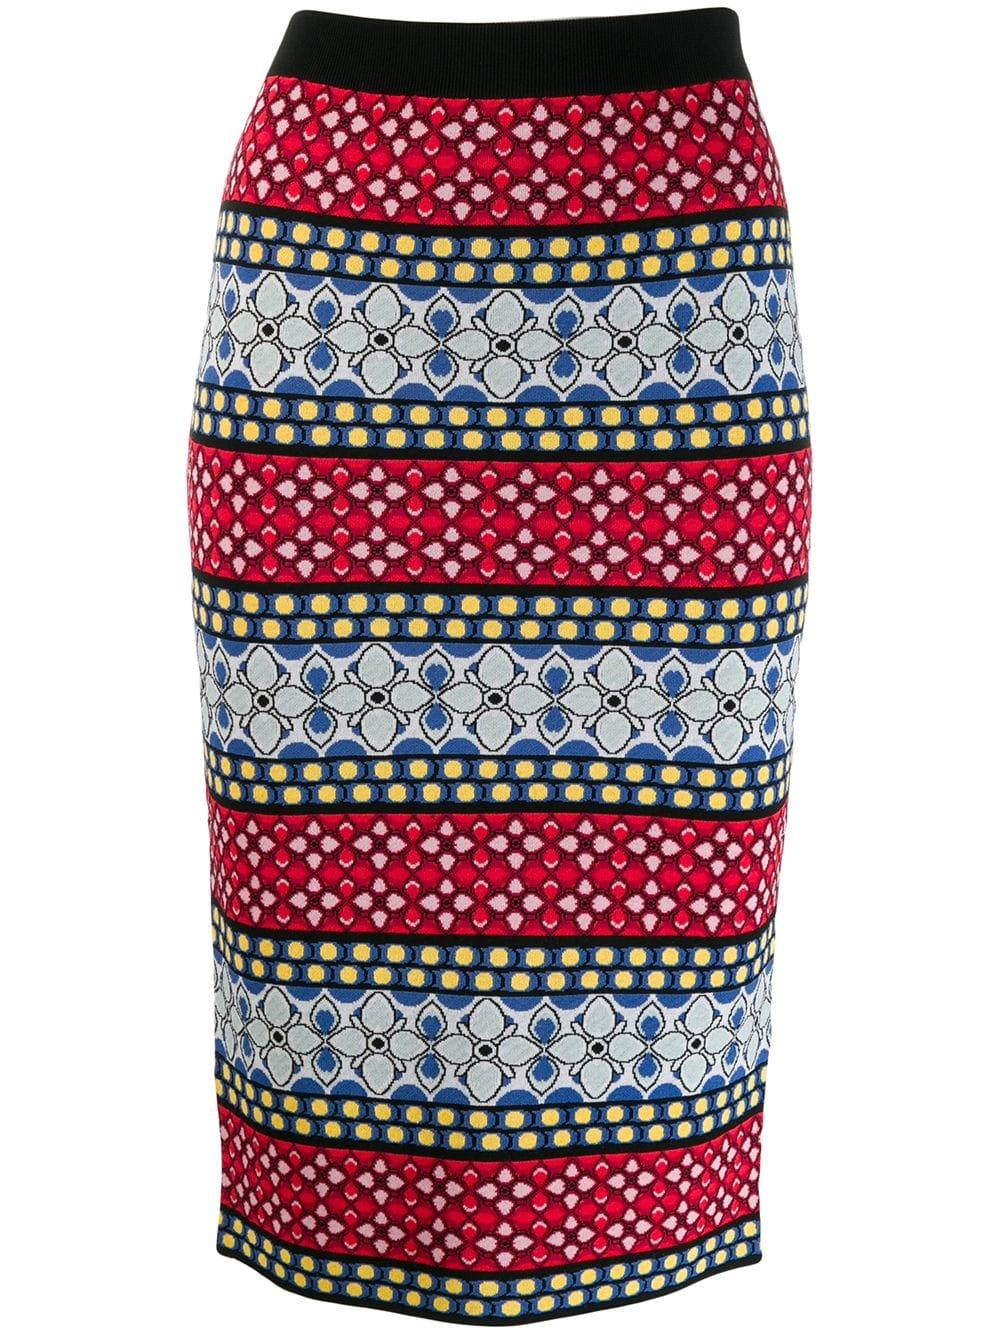 Morena Pencil Skirt